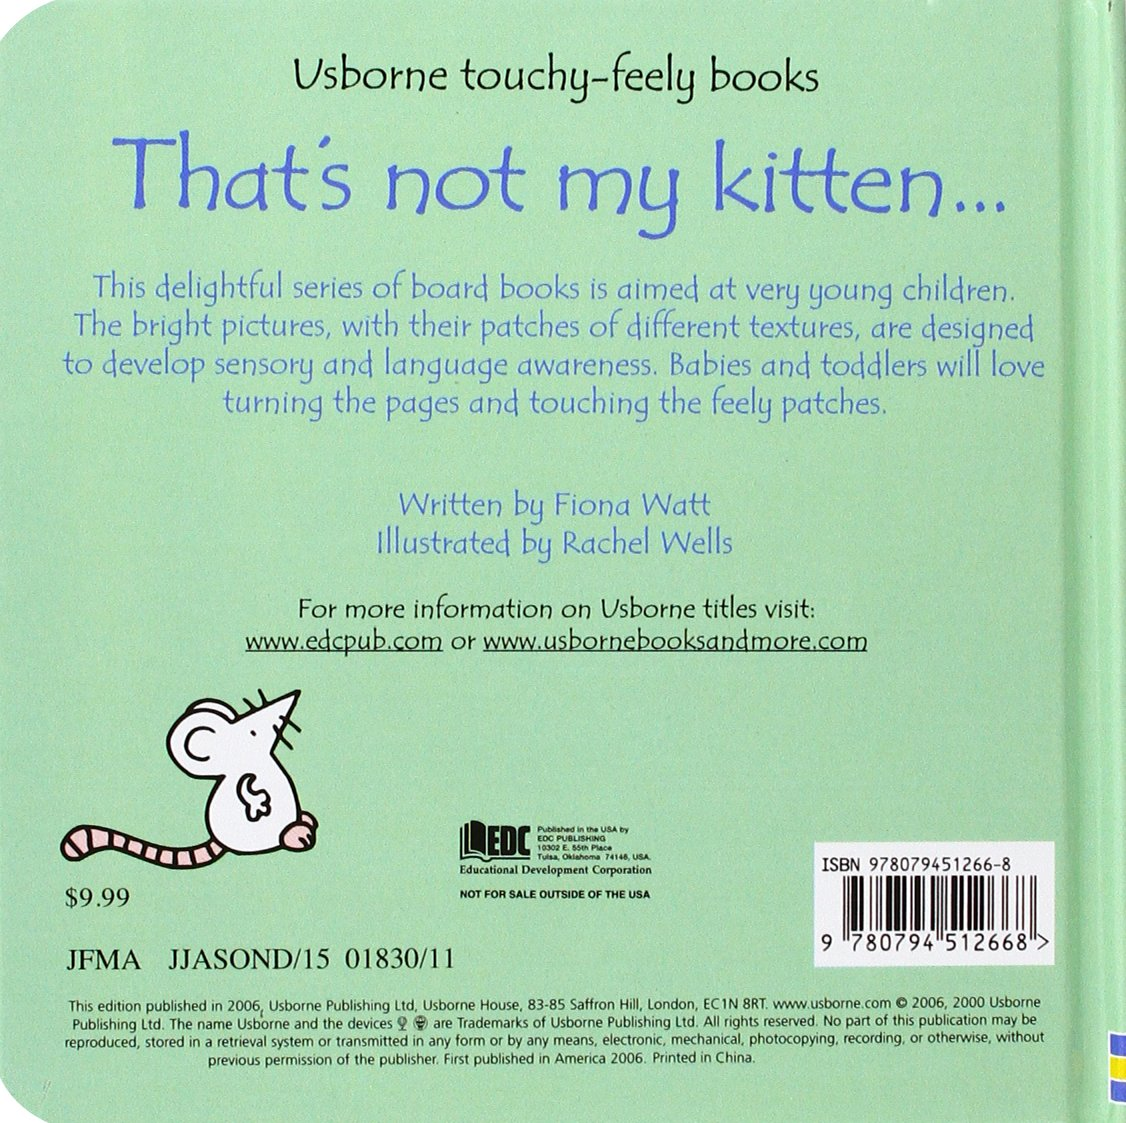 That's Not My Kitten... (Usborne Touchy-Feely Books)